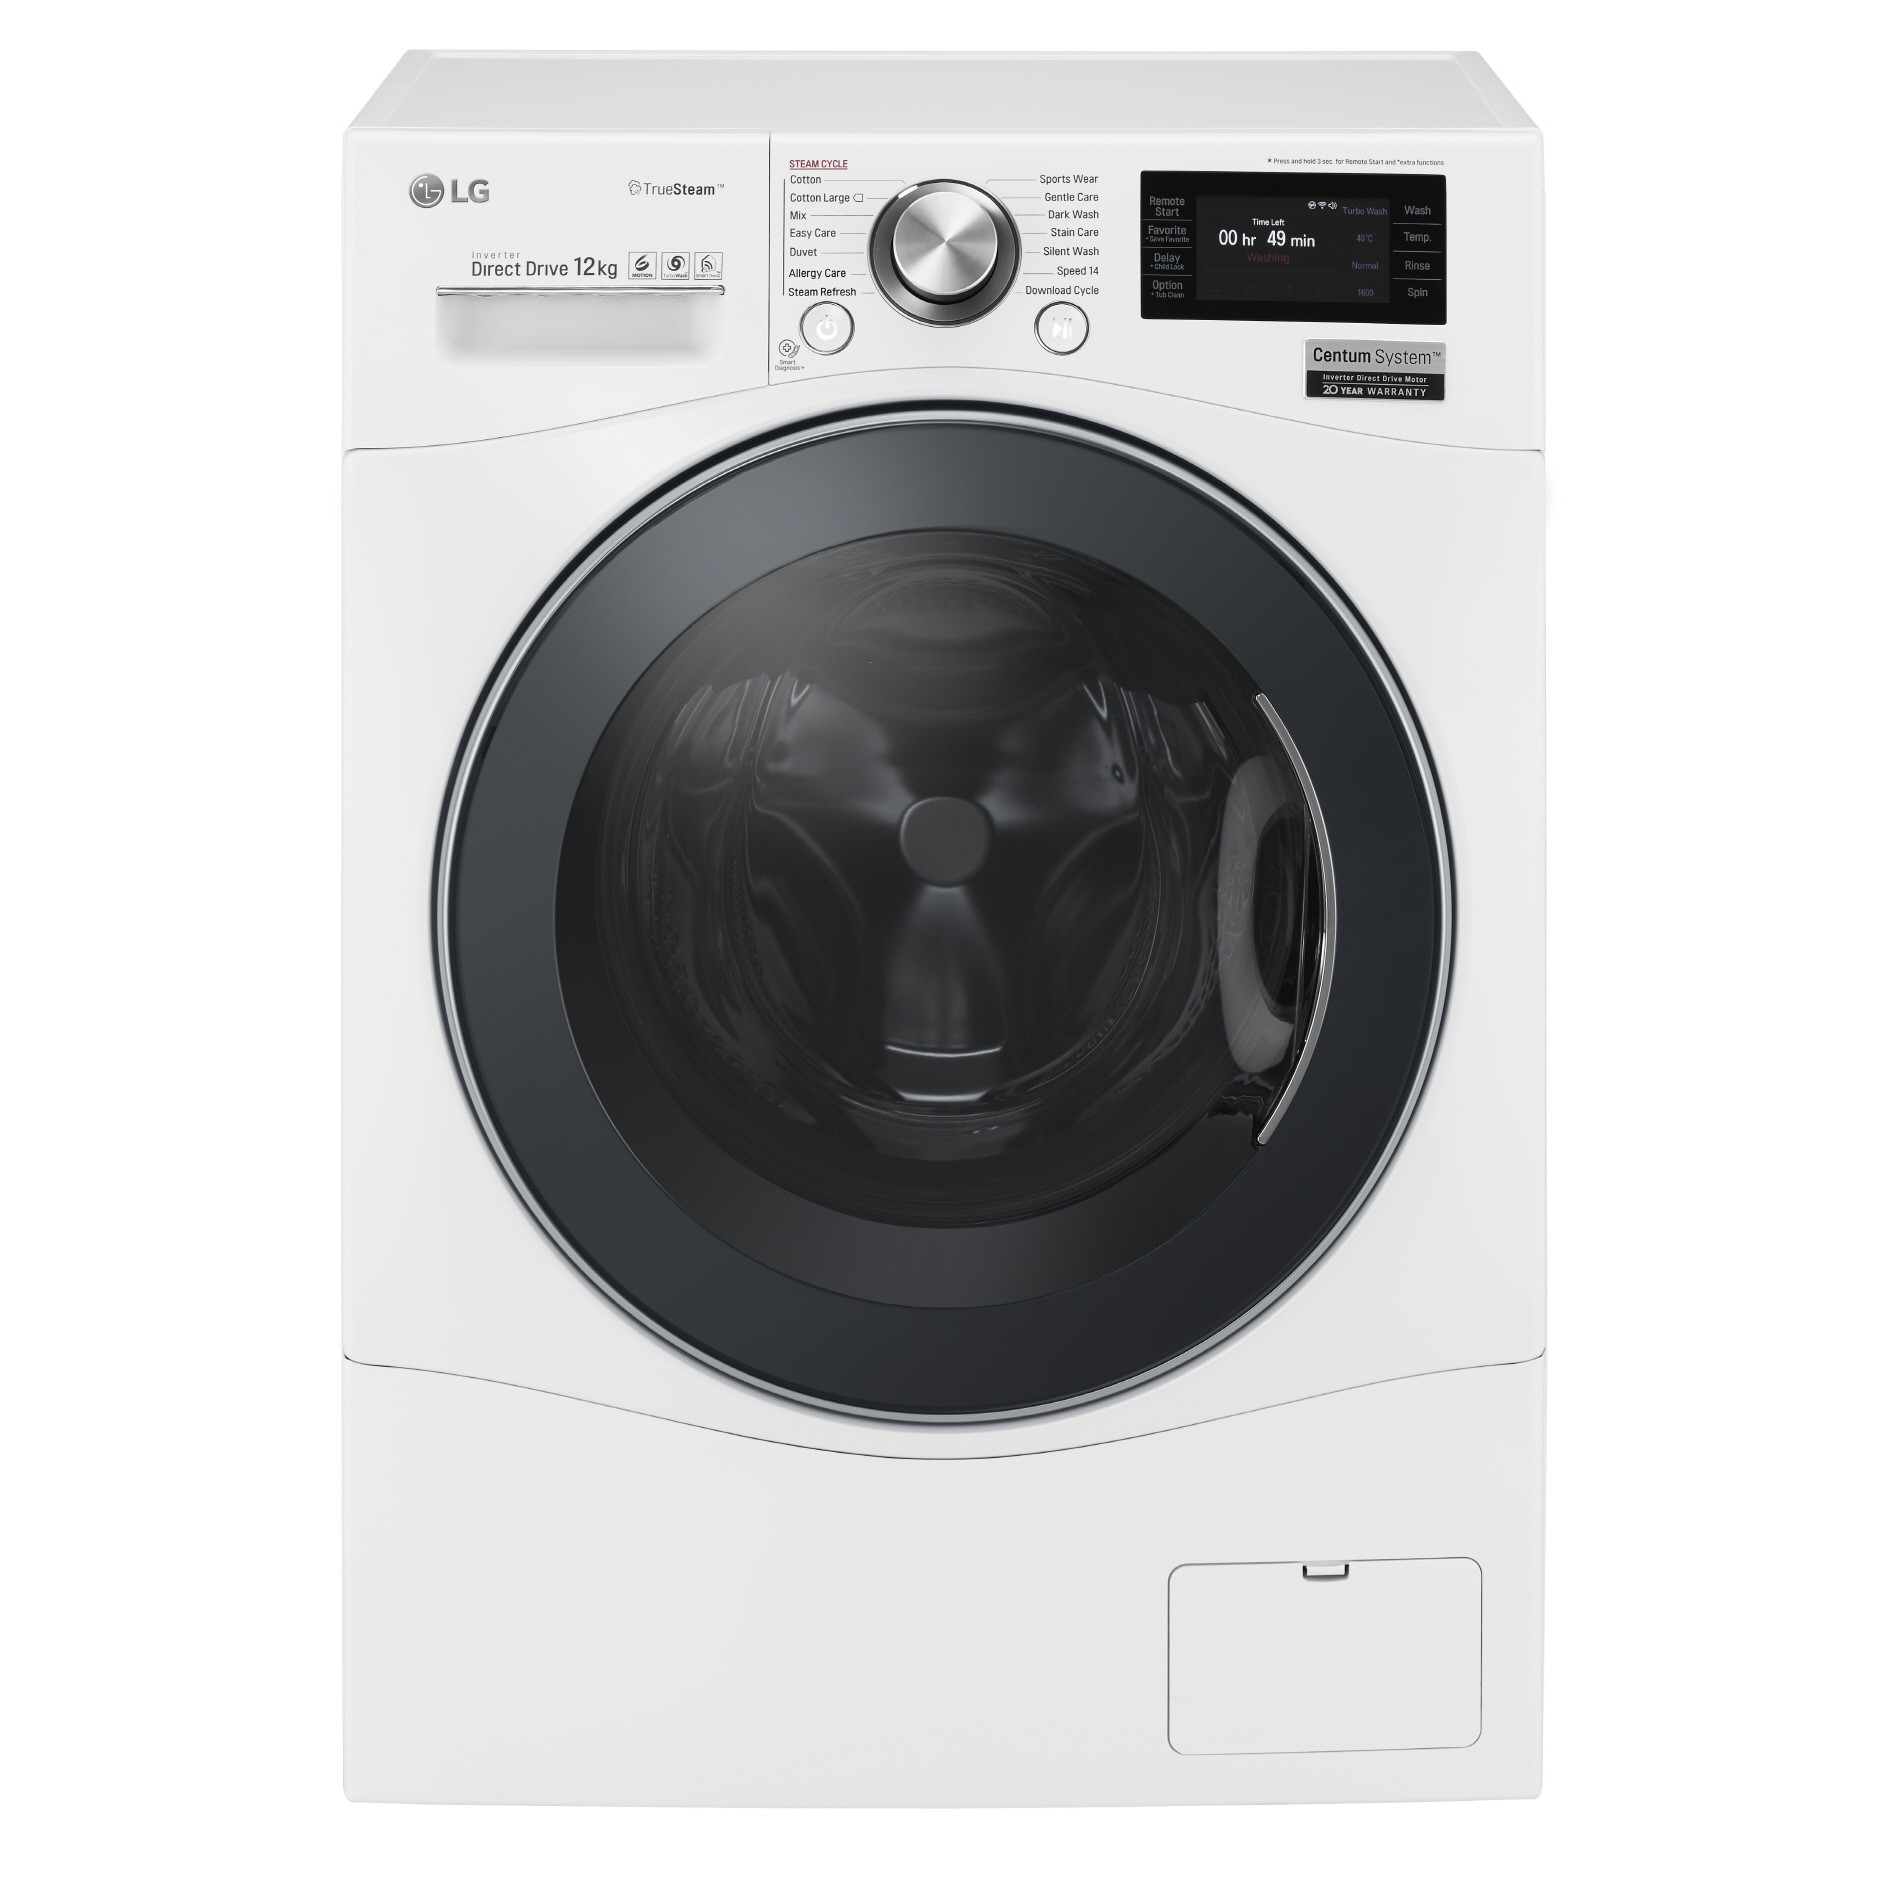 Front view of LG front-load washing machine